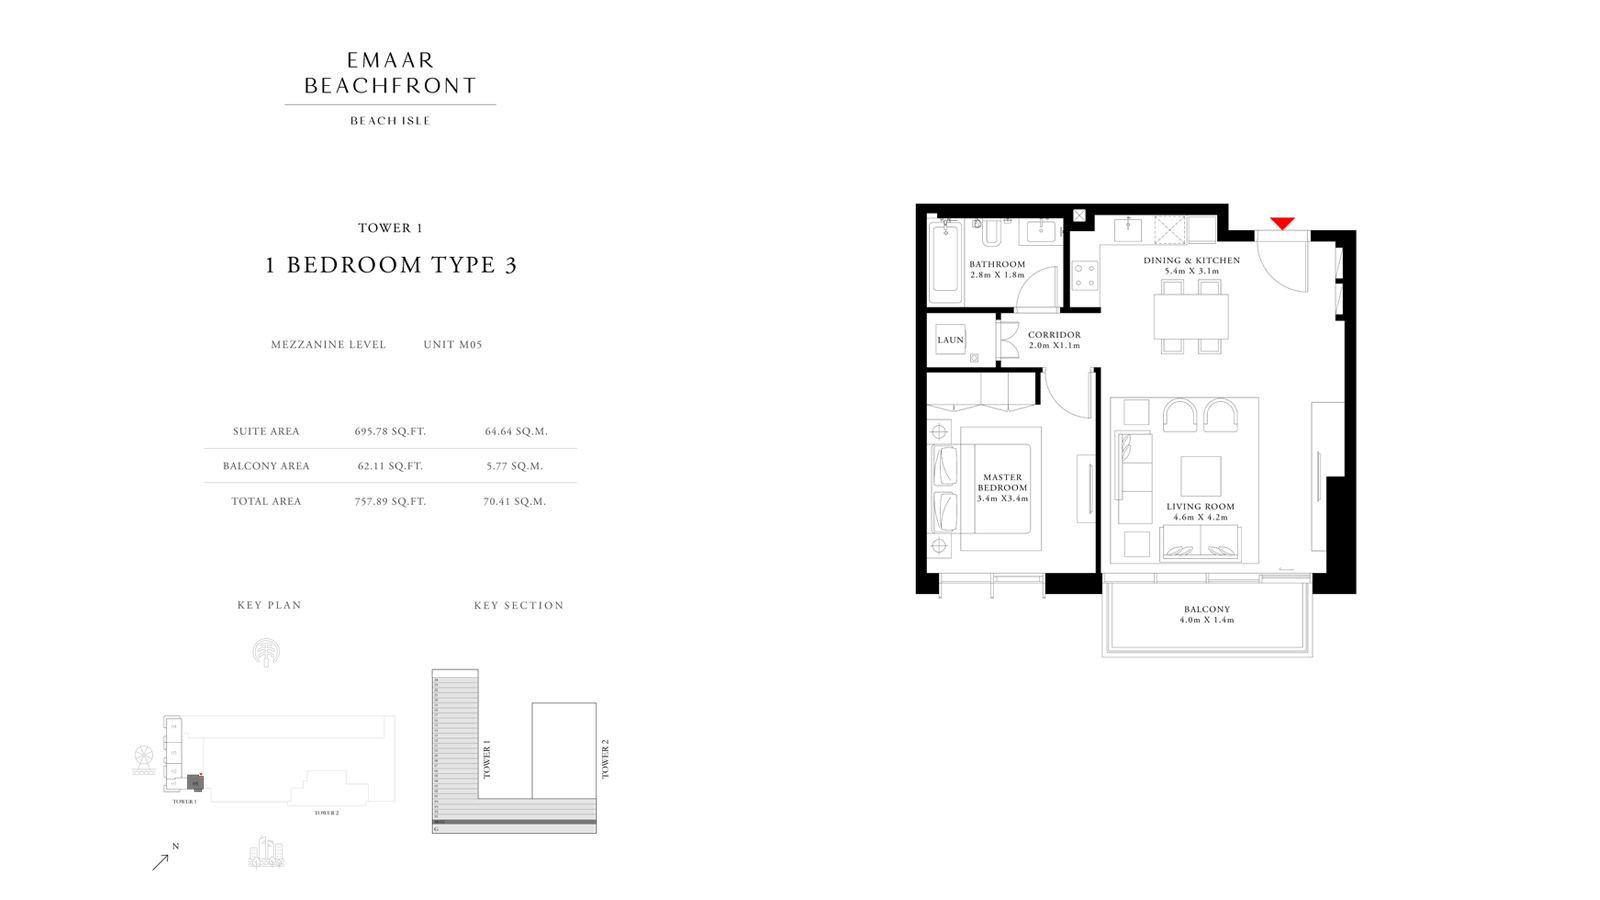 1 Bedroom Type 3 Tower 1, Size 757 sq ft